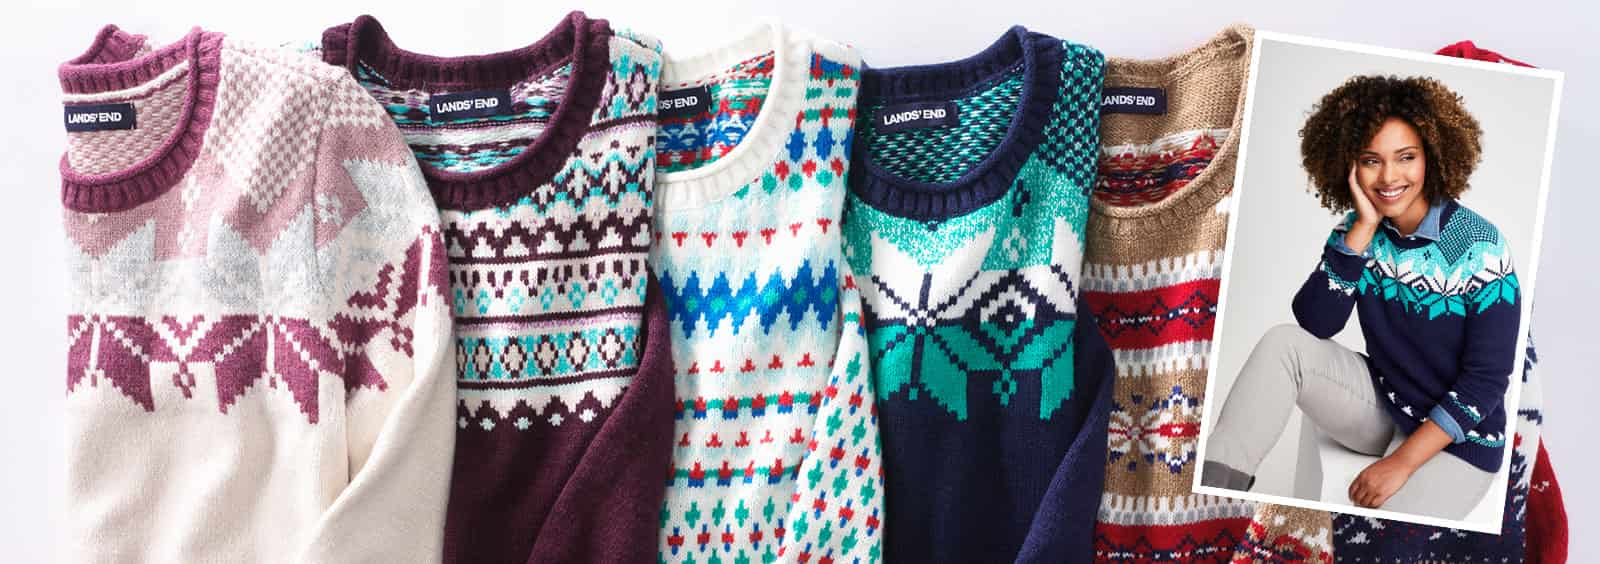 Christmas Sweaters to Wear to Your Office Party   Lands' End